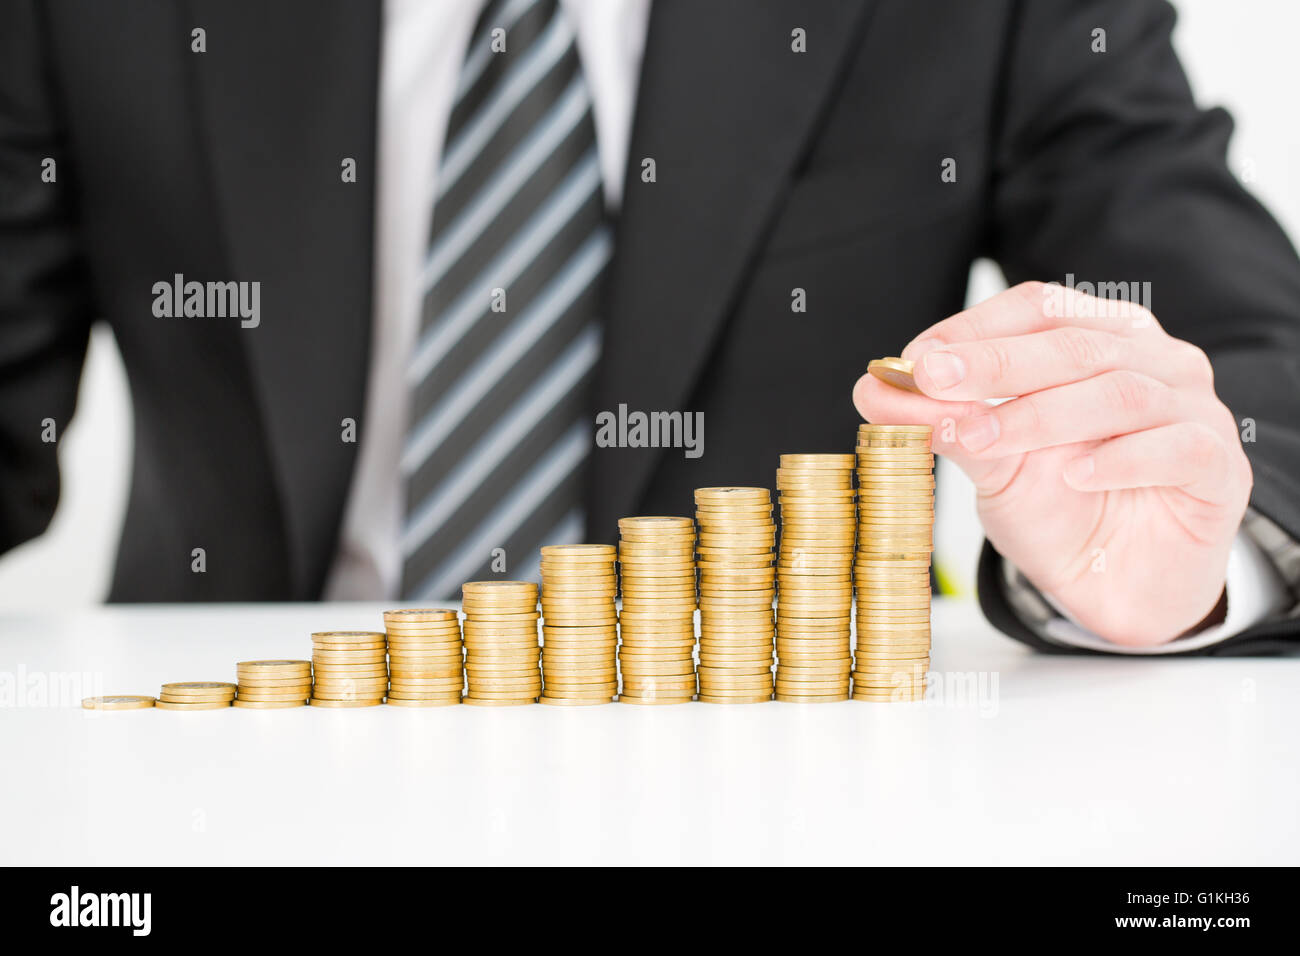 Saving money concept. Businessman hand putting money coin stack growing business. - Stock Image